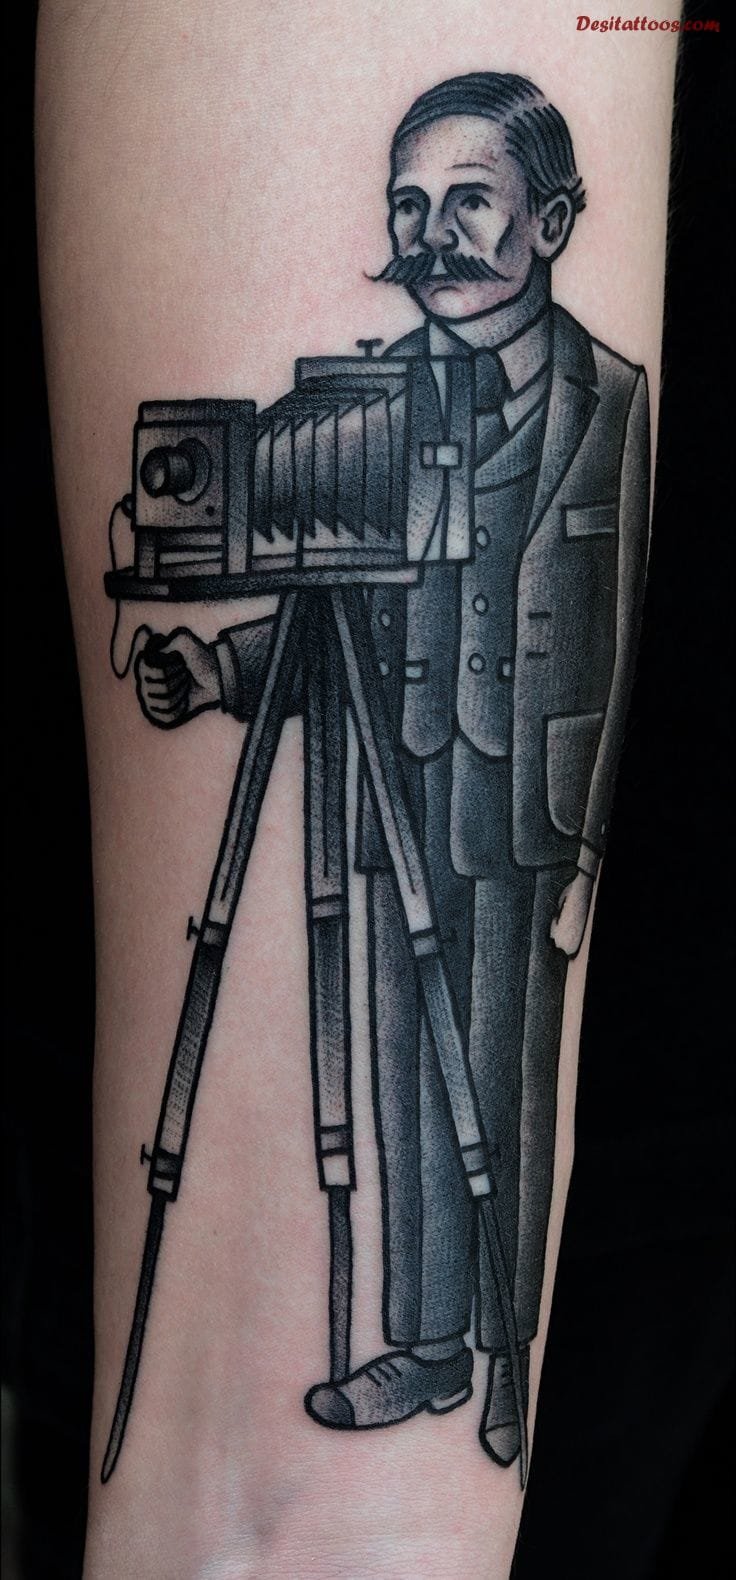 Amazing black and solid traditional tattoo, with the camera man! Artist unknown